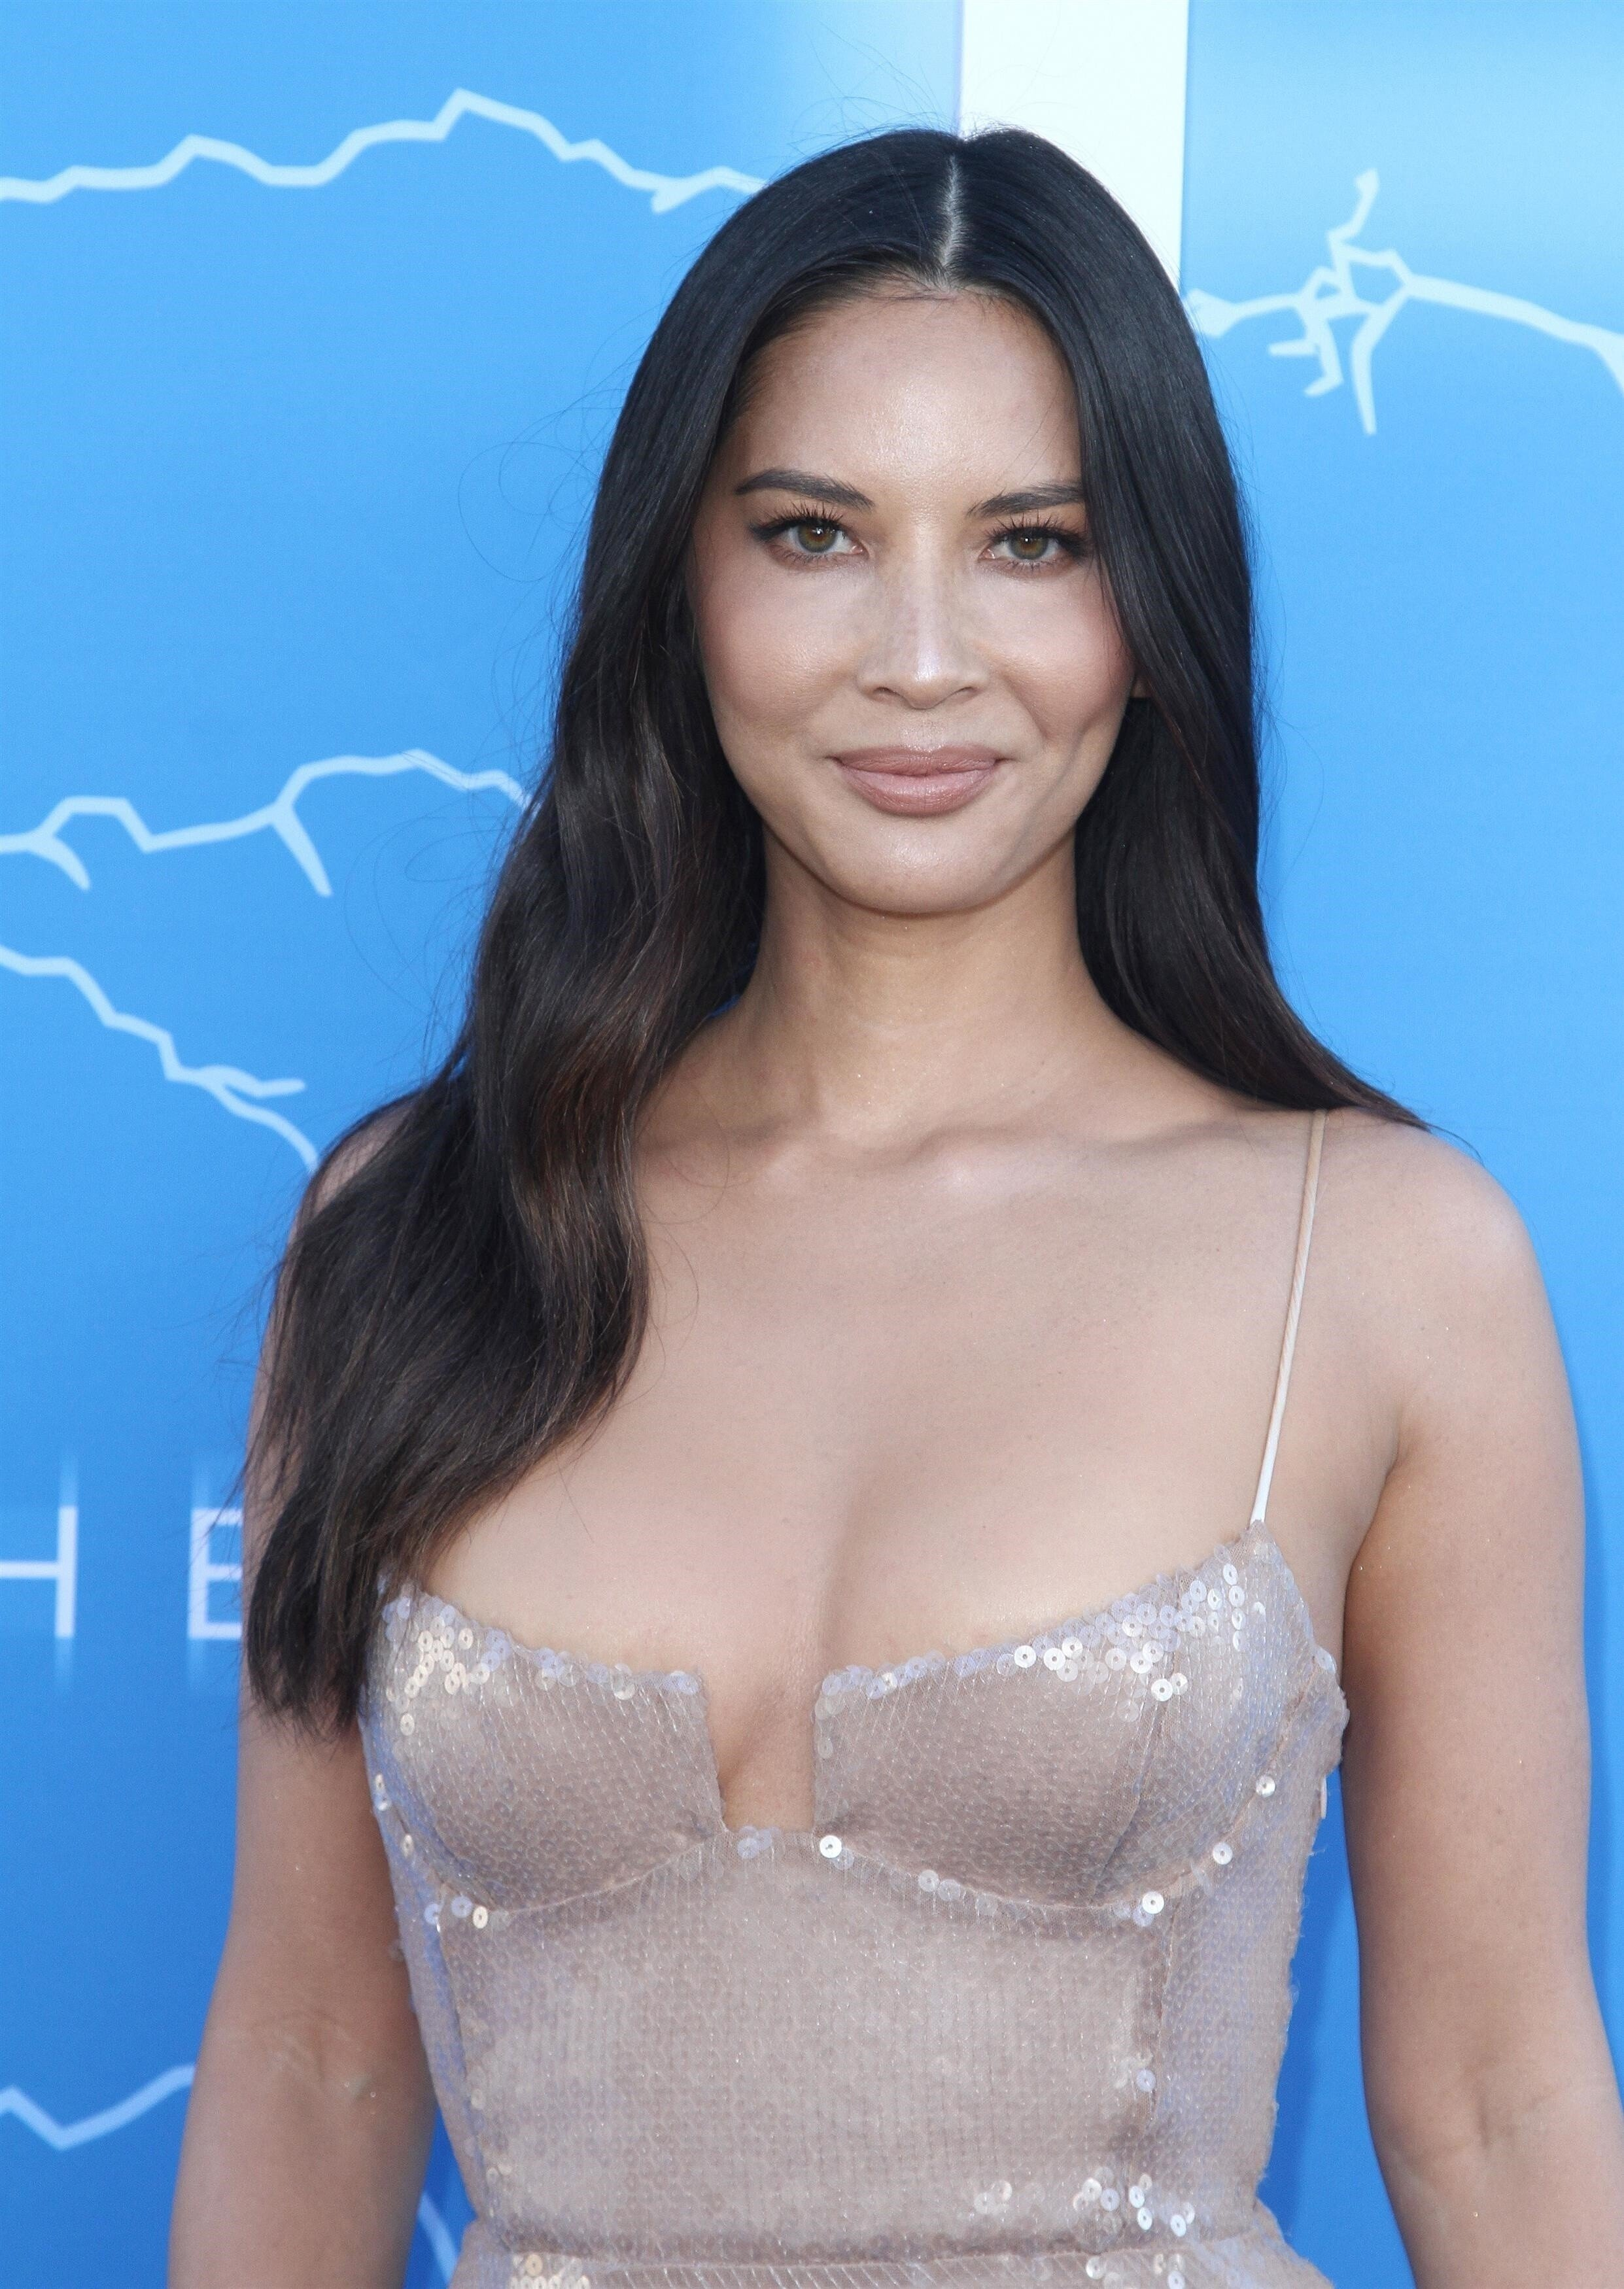 Olivia Munn At The Premiere Of THE ROOK In Los Angeles Set 1